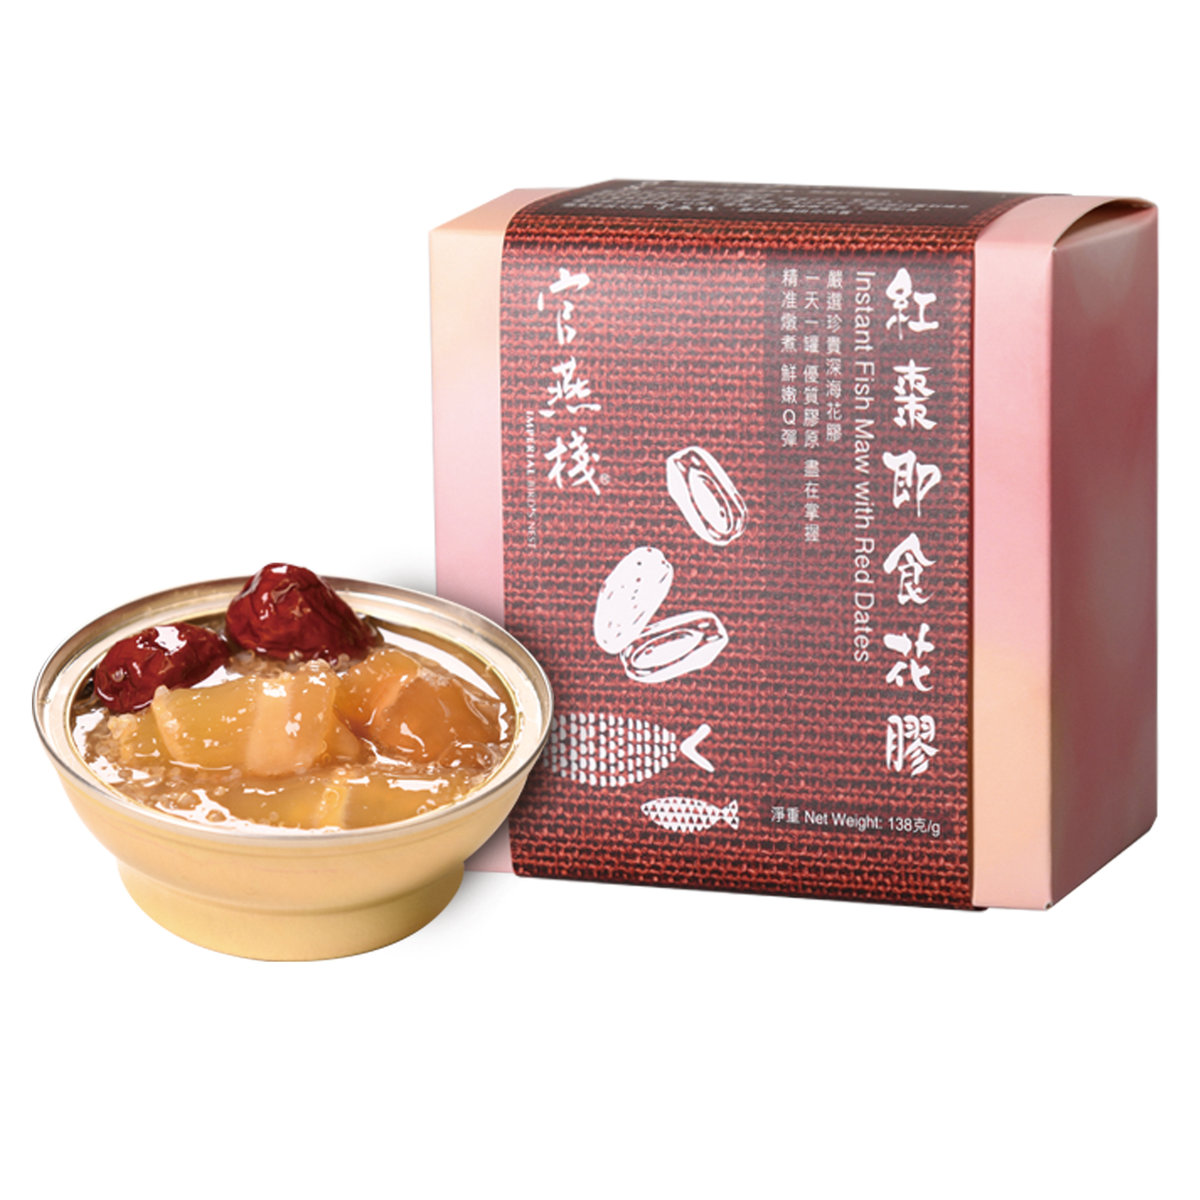 IBN Instant Fish Maw with Red Dates